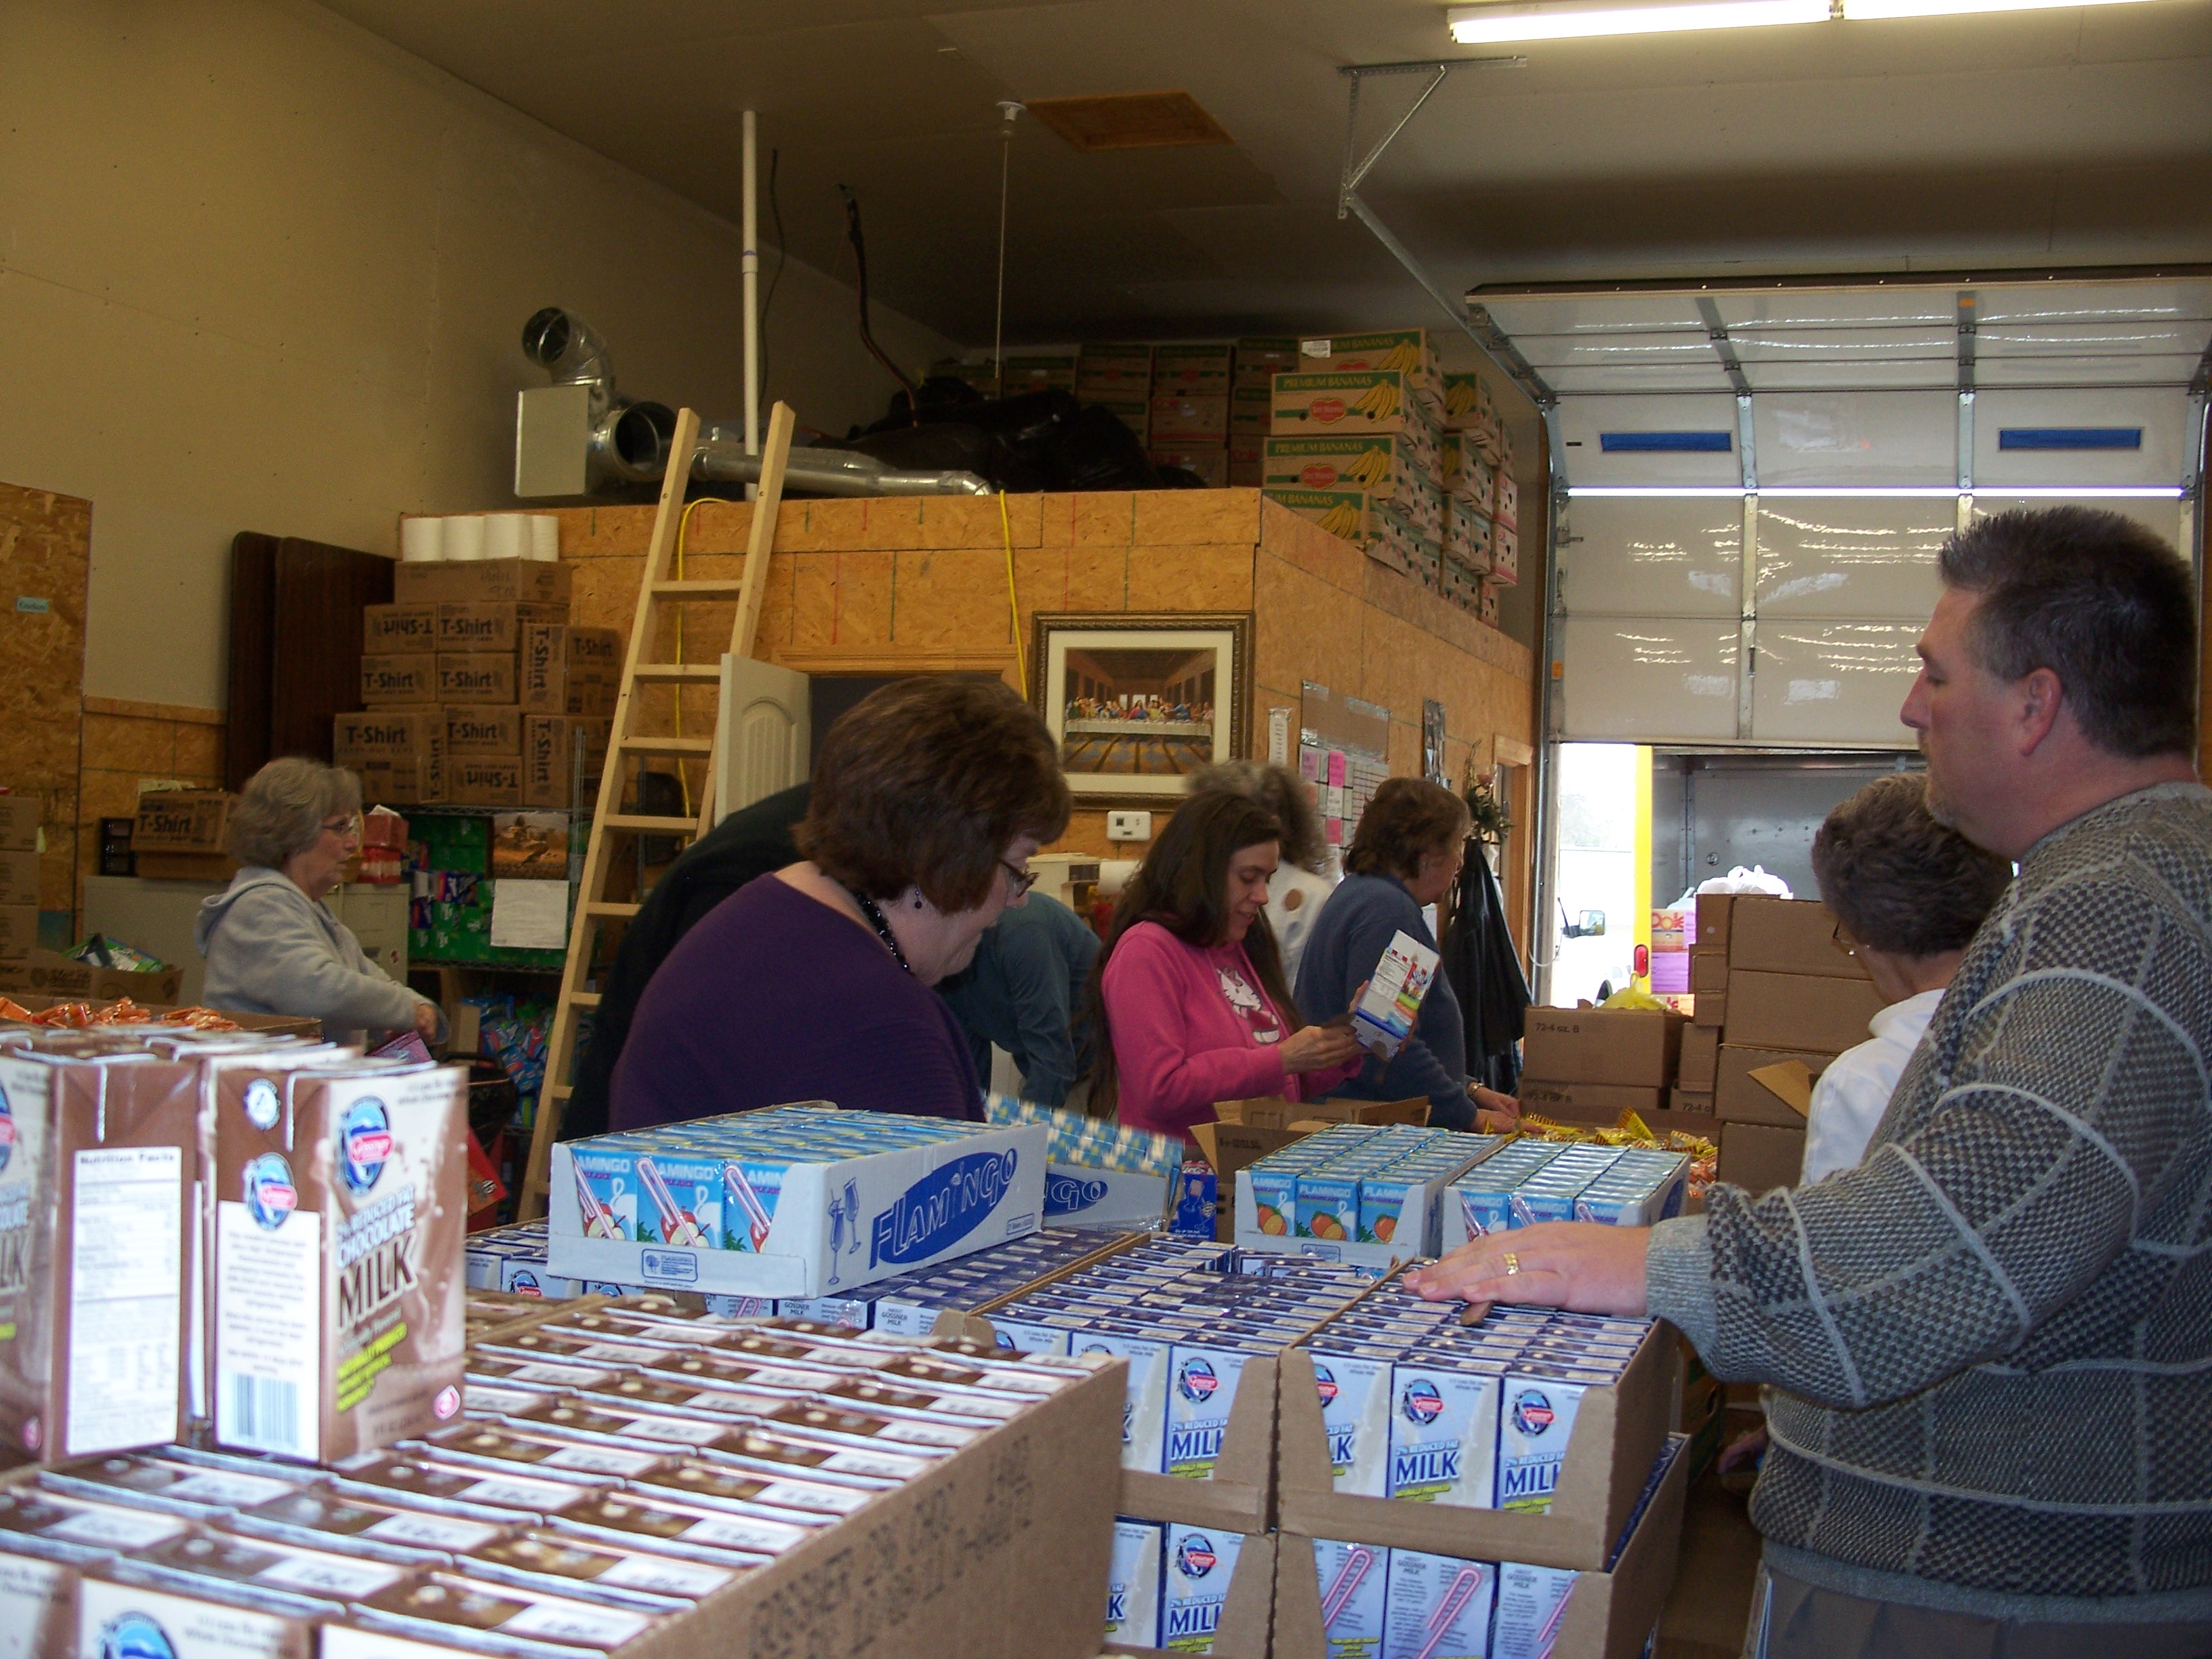 Agape' Mission and its expanding role in feeding the needy